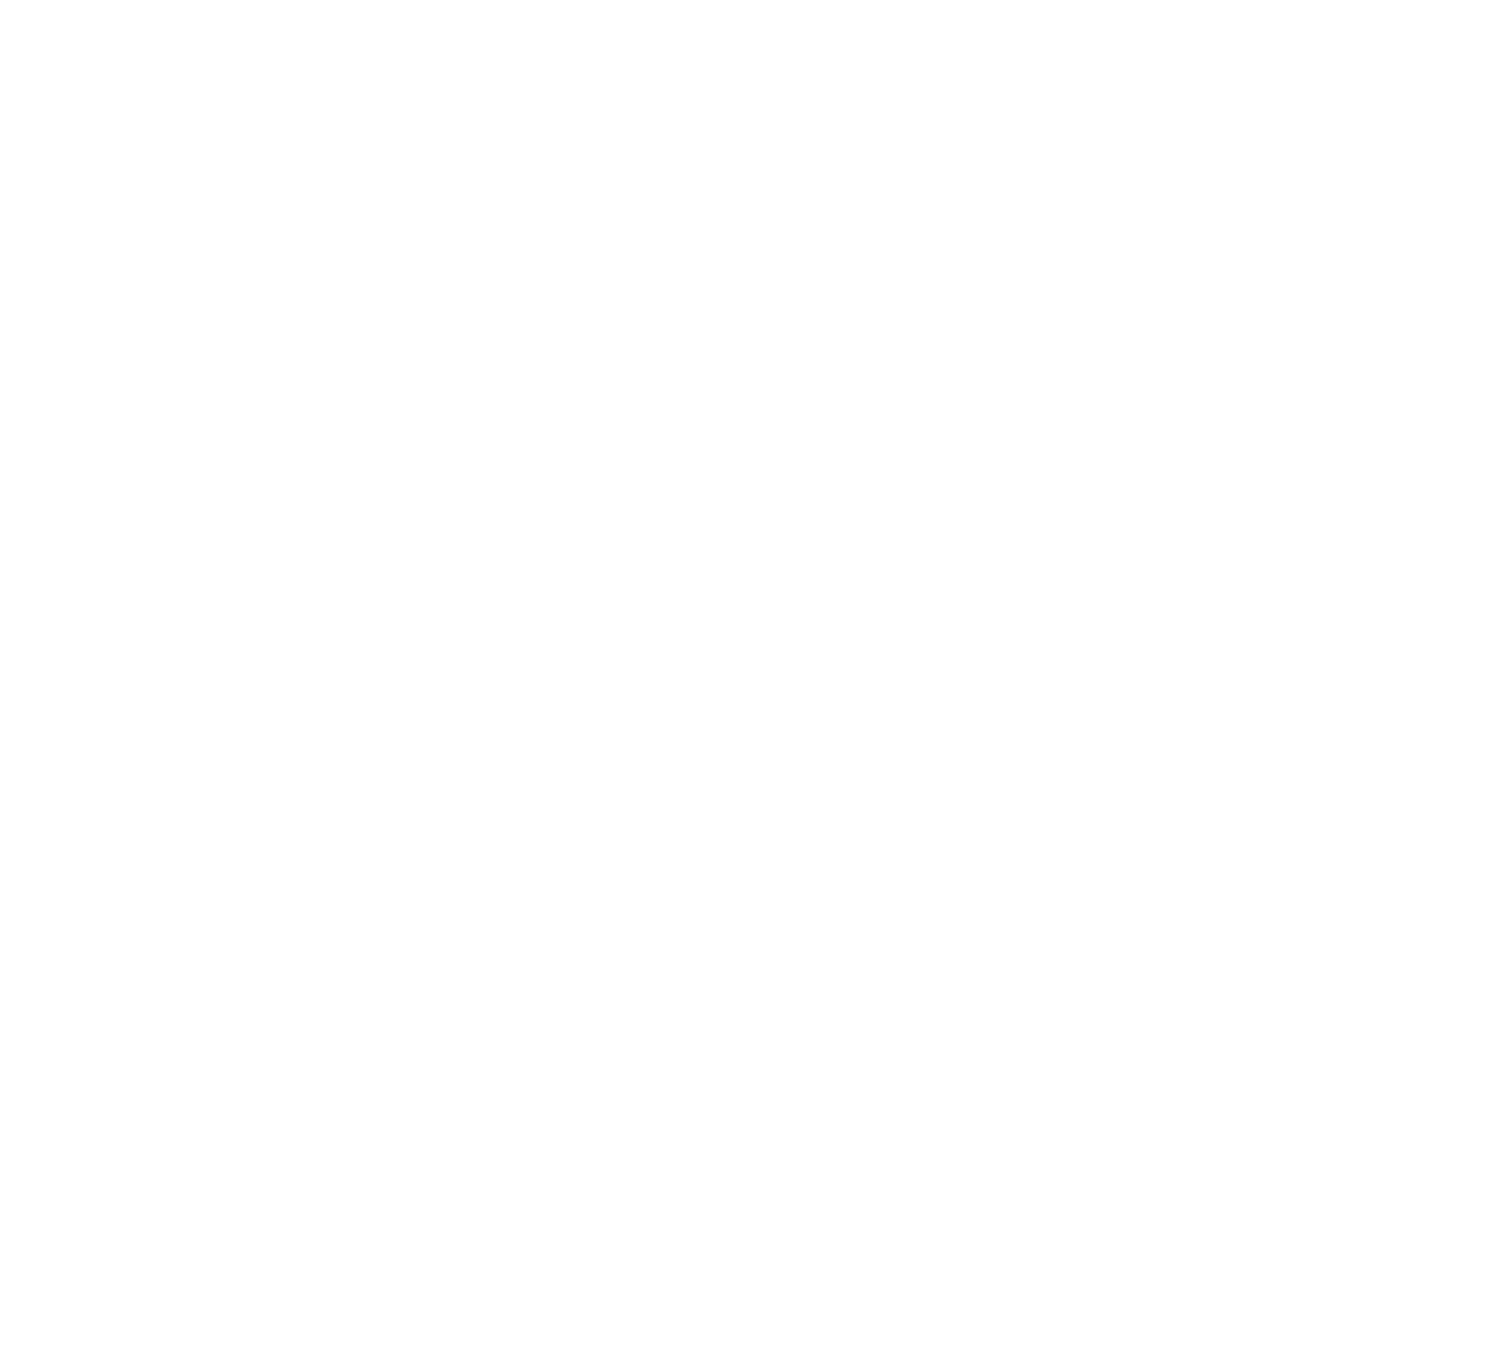 Palouse Land Trust